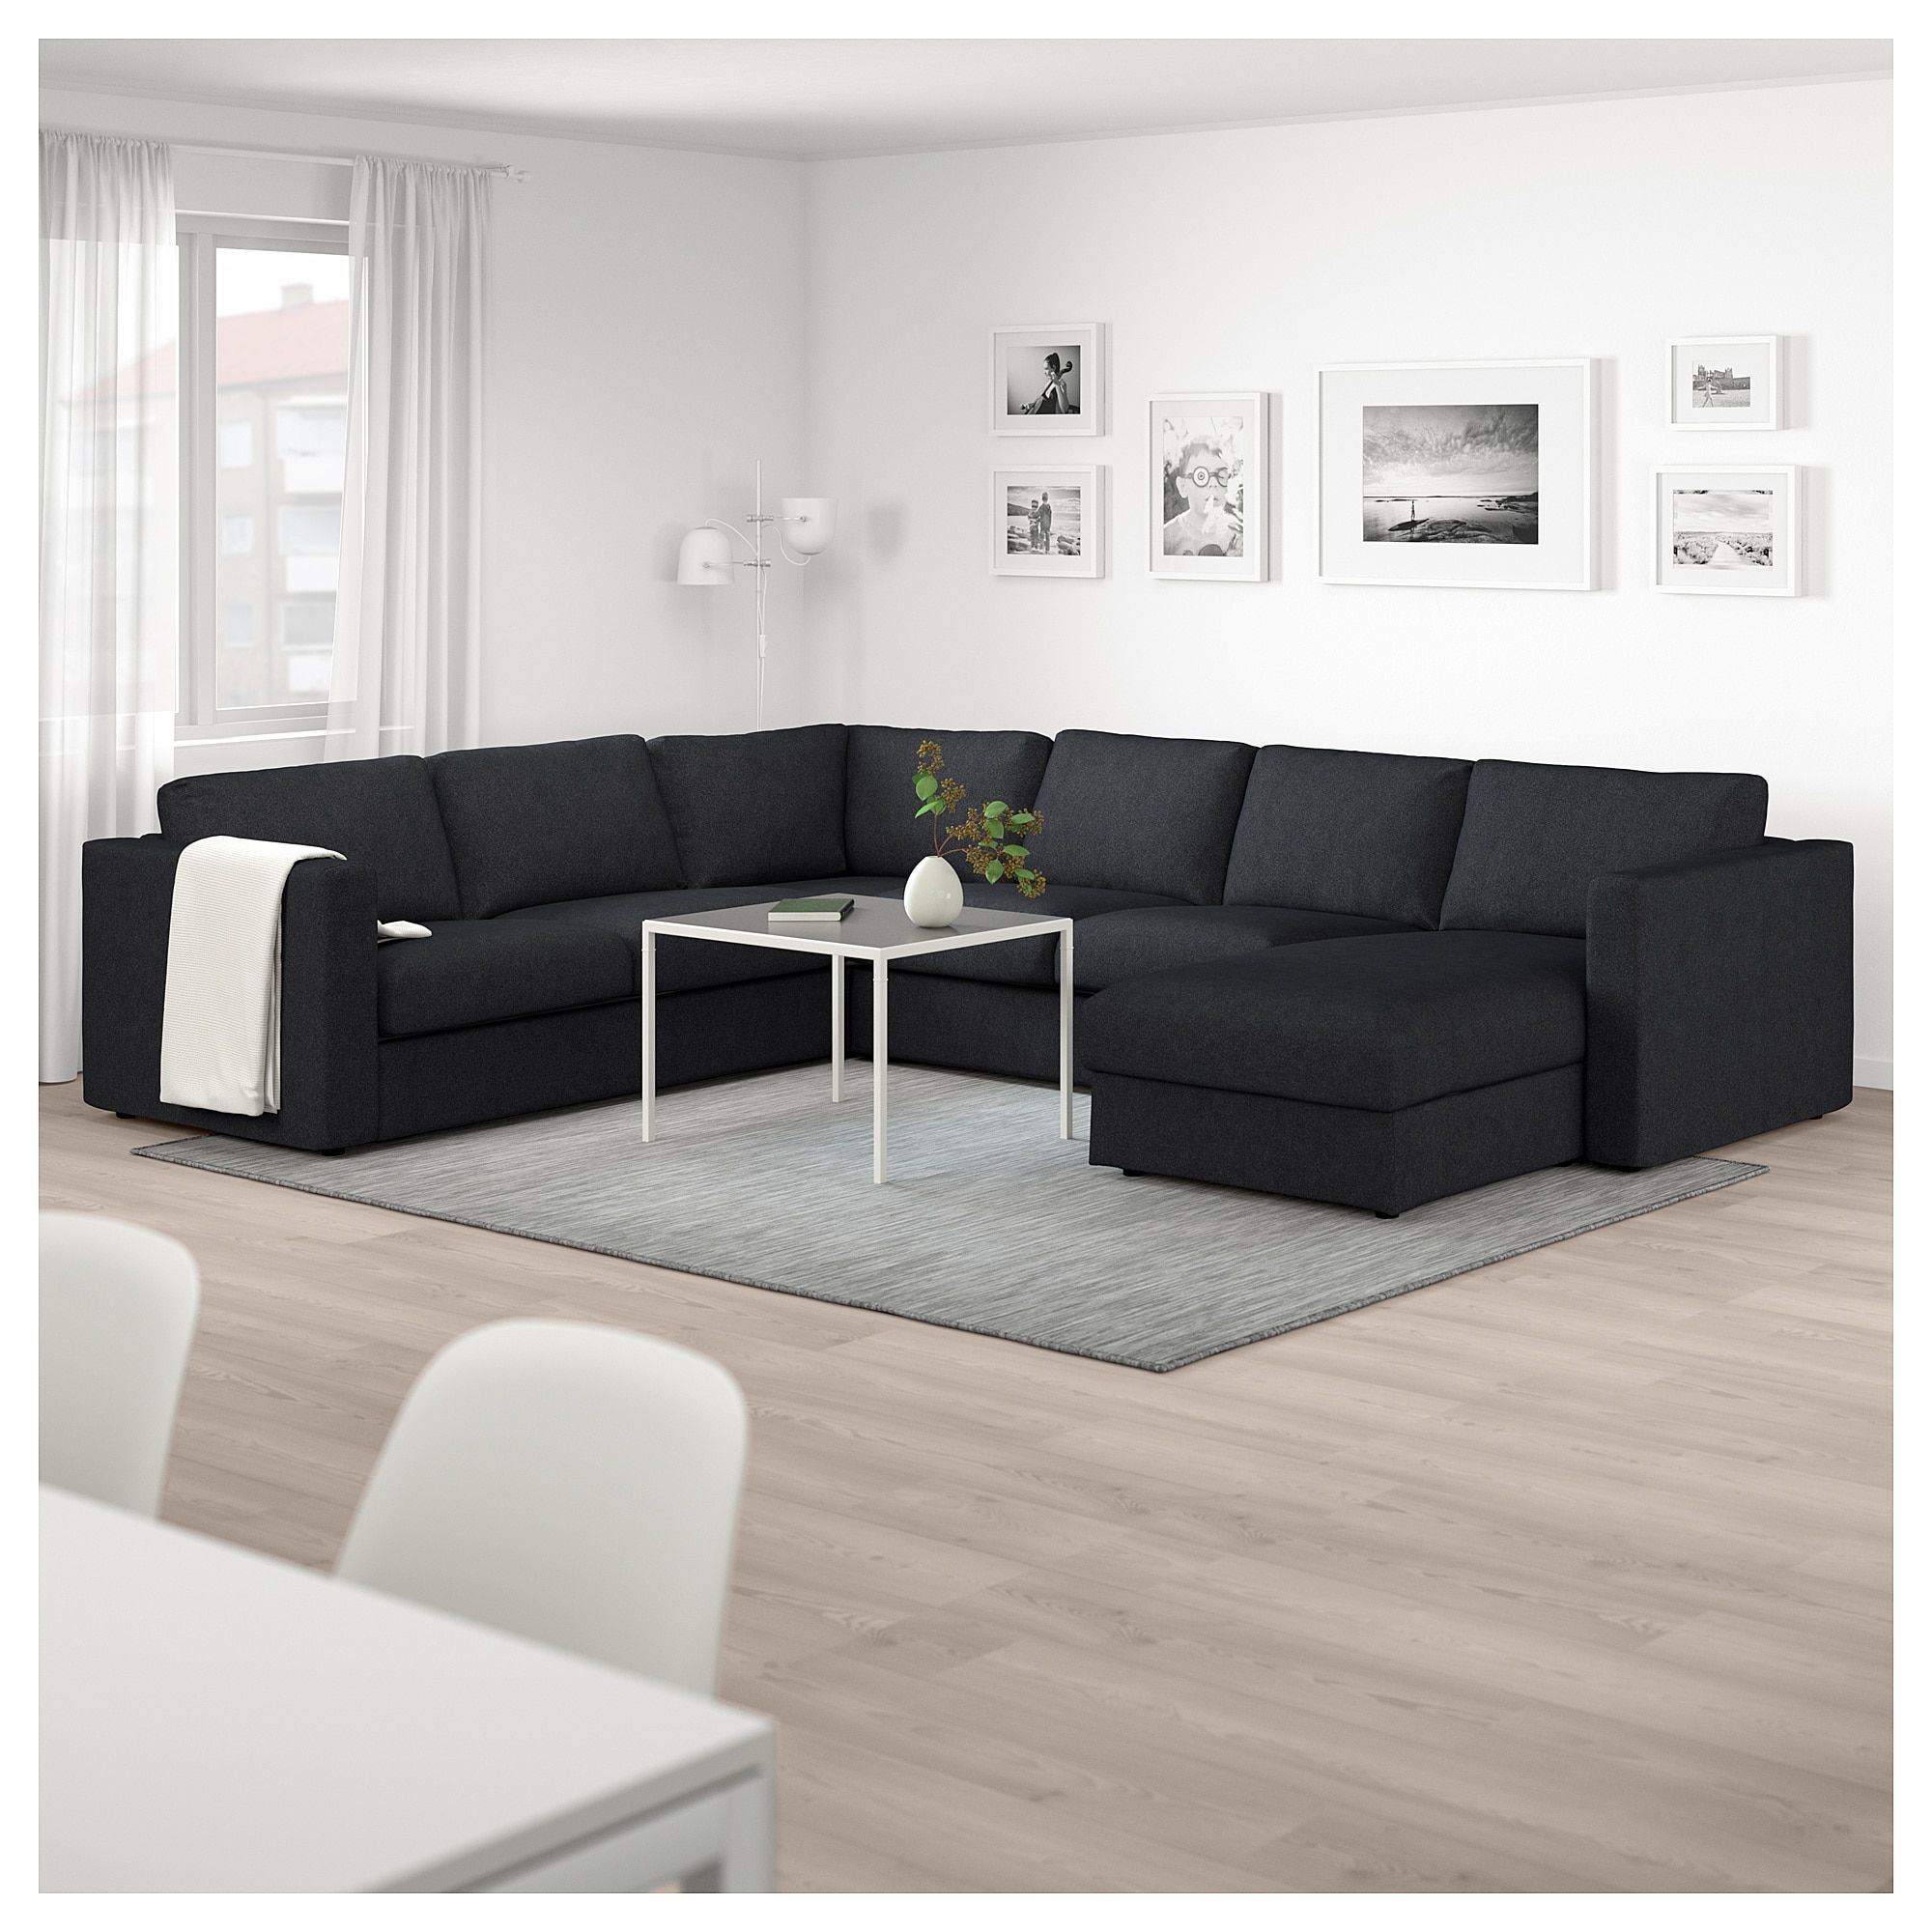 Ikea Beine Sofa Vimle Sectional 5 Seat Corner With Chaise Tallmyra Black Gray